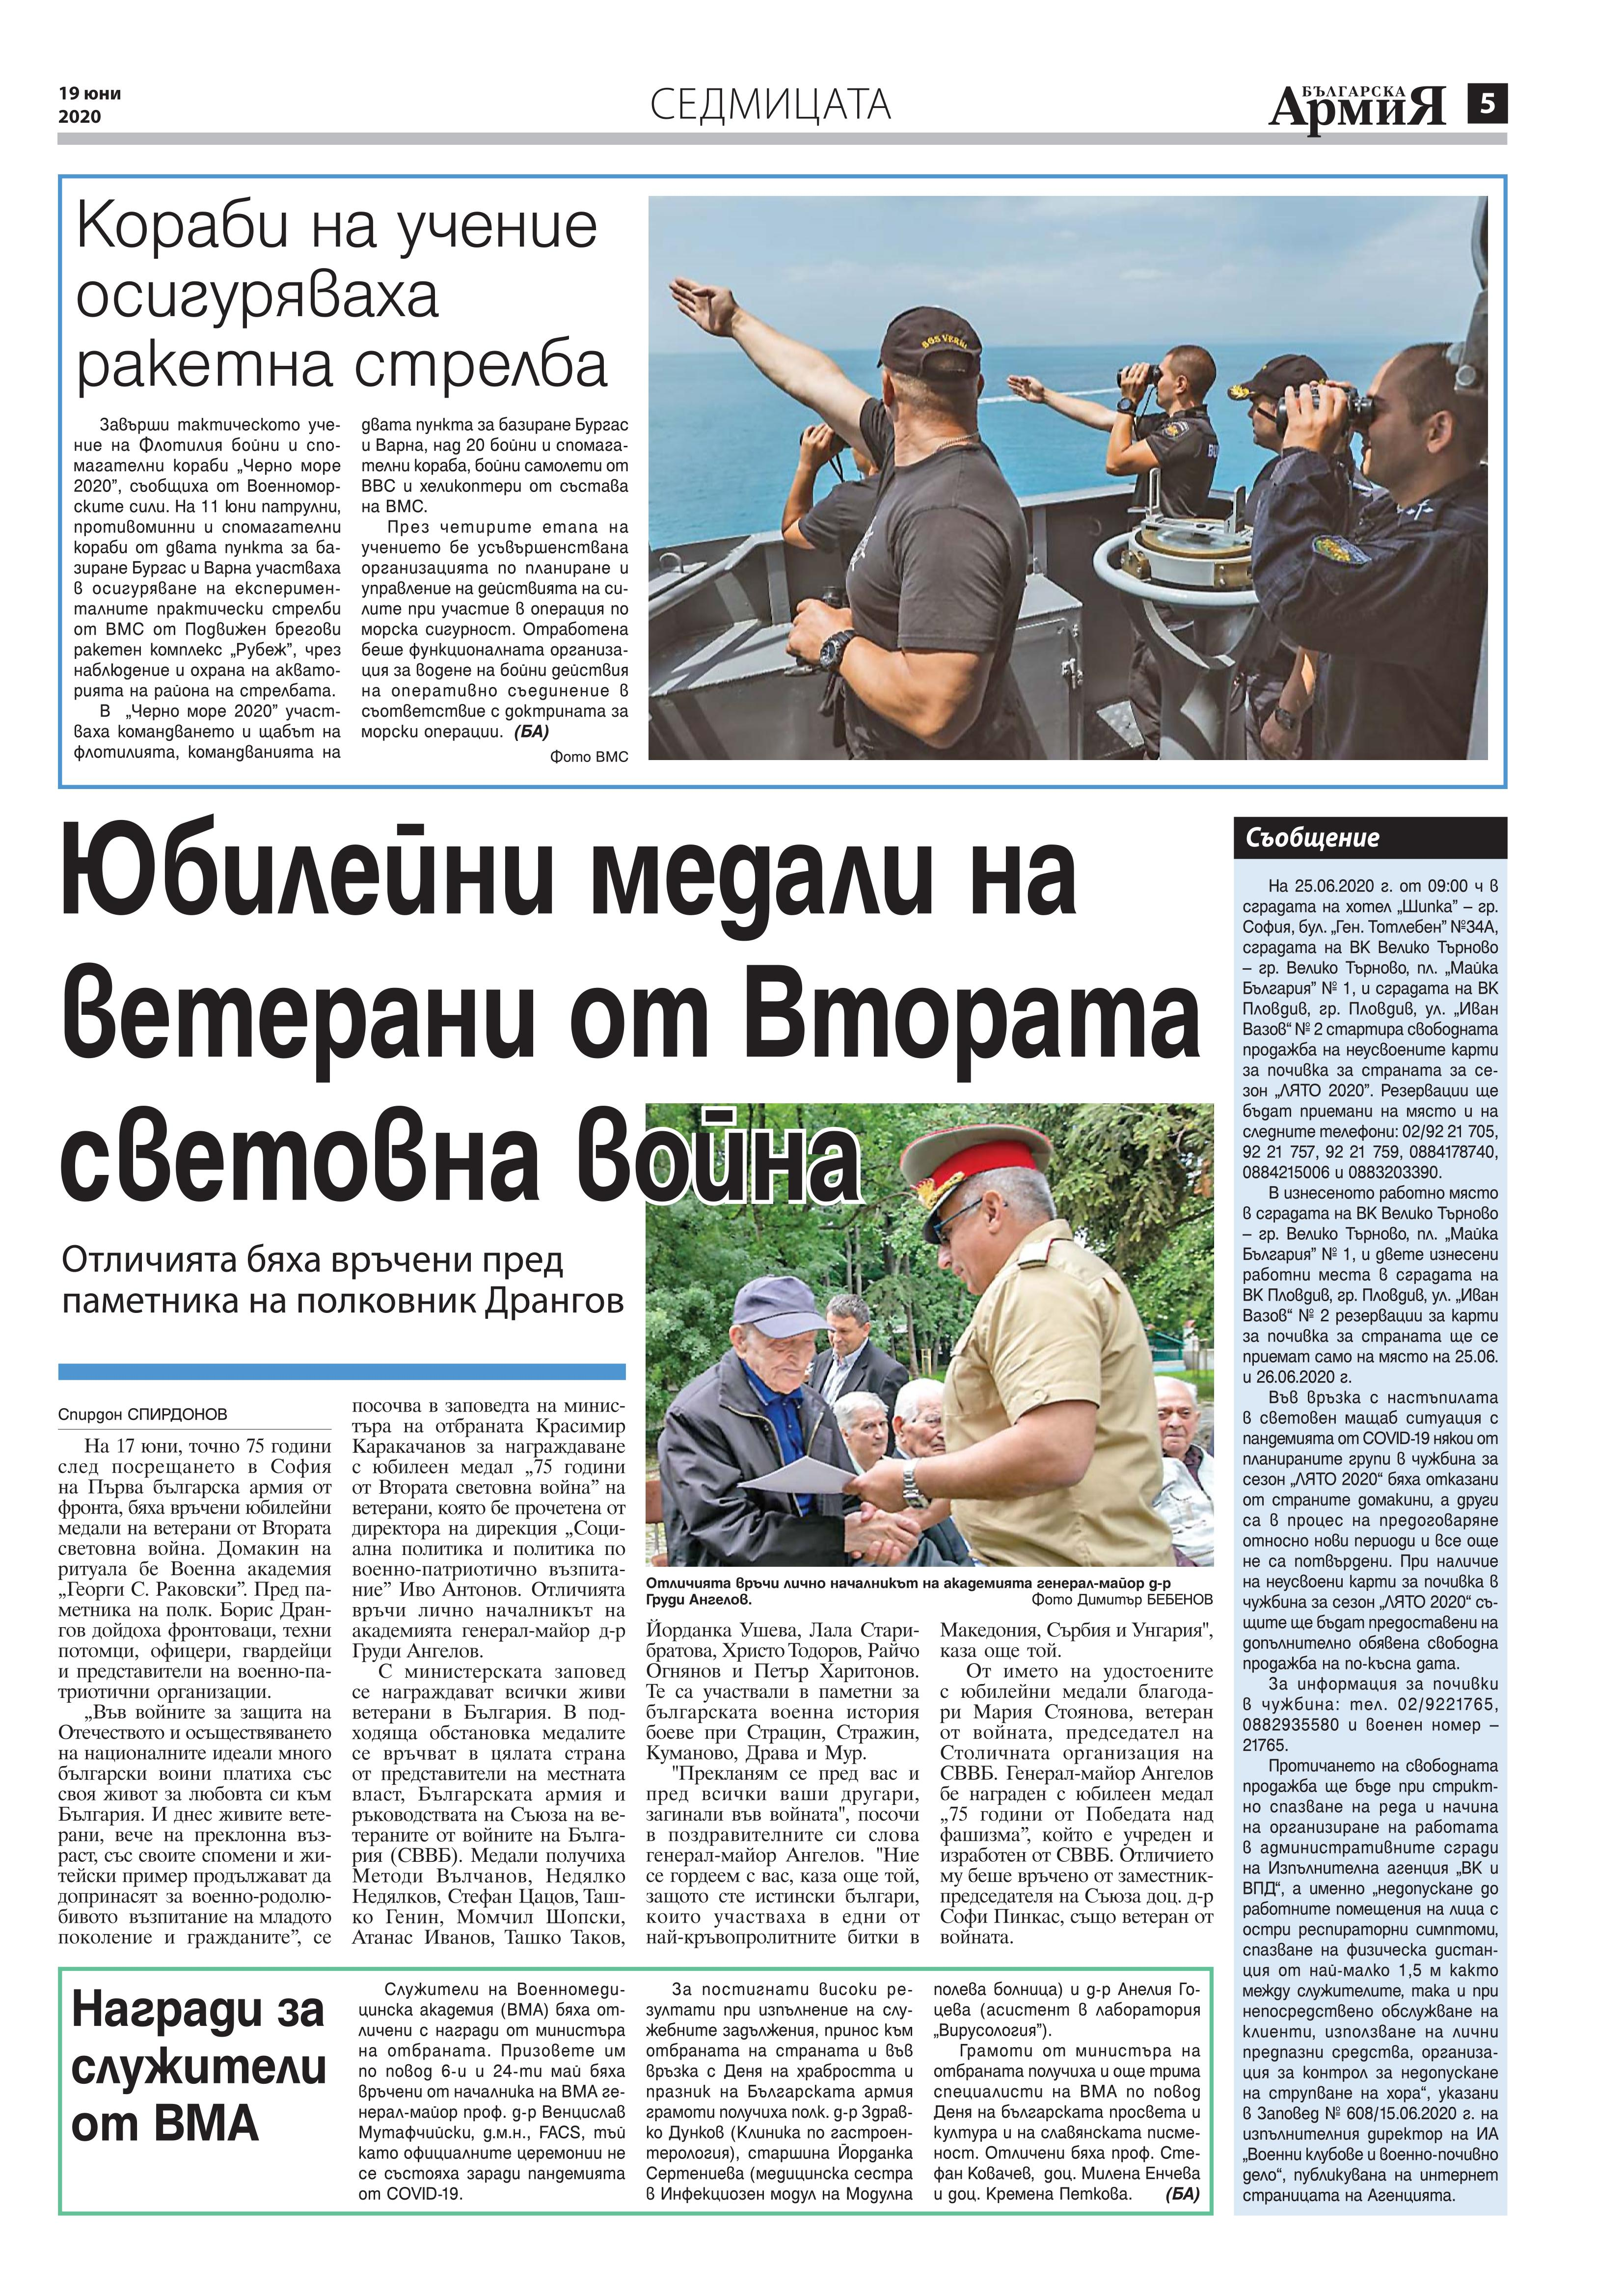 https://armymedia.bg/wp-content/uploads/2015/06/05.page1_-140.jpg